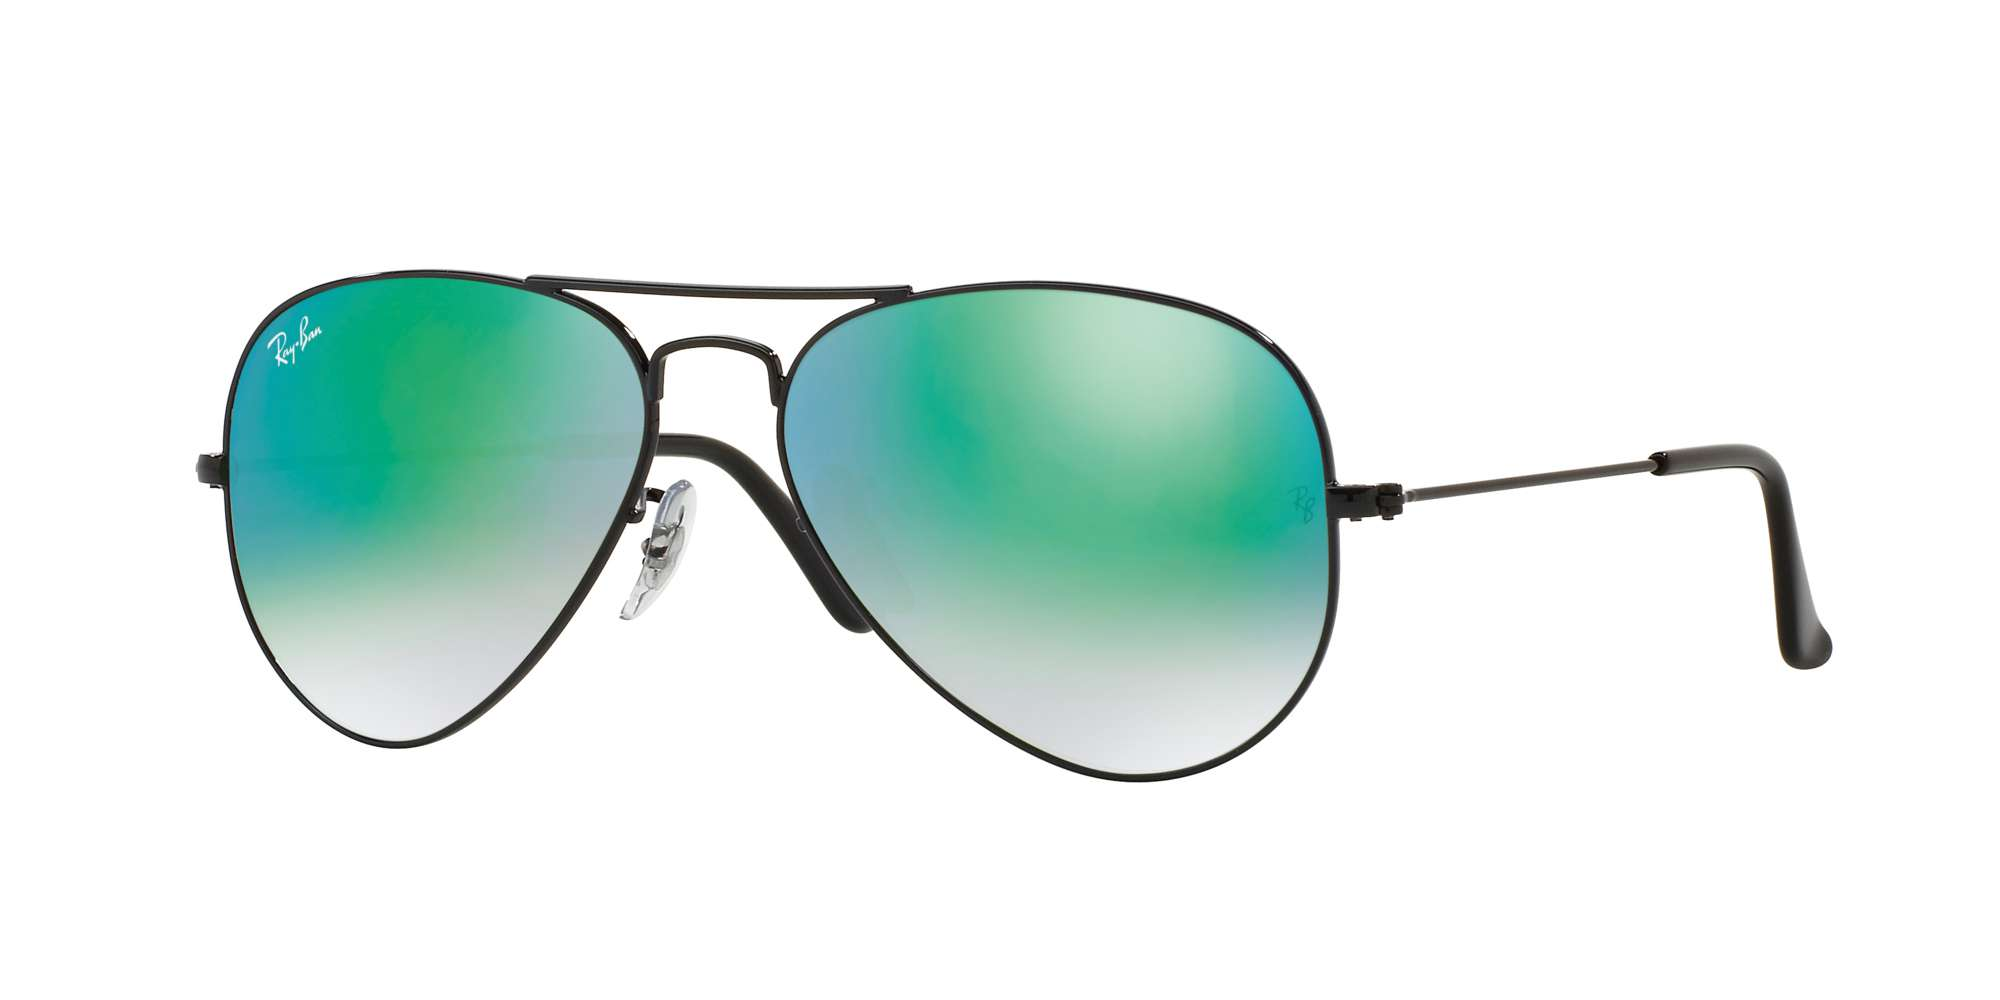 SHINY BLACK / MIRROR GRADIENT GREEN lenses